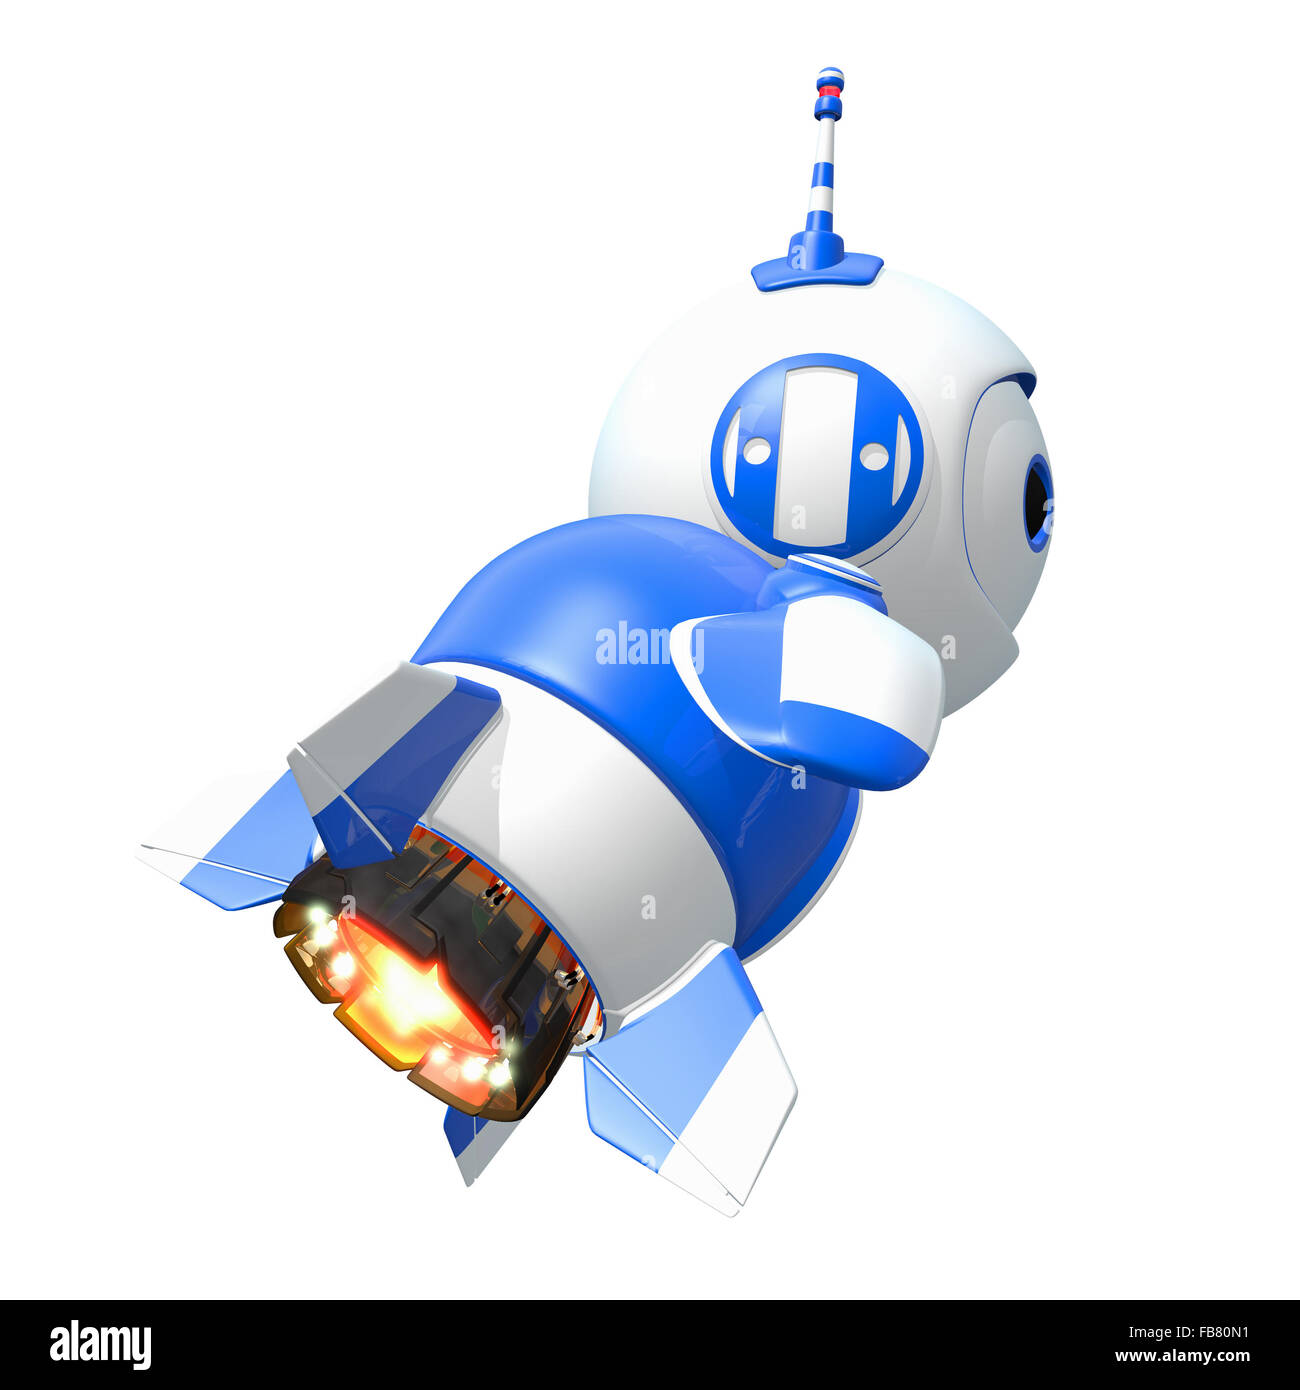 Little blue rocket bot blasting off toward new discoveries. - Stock Image